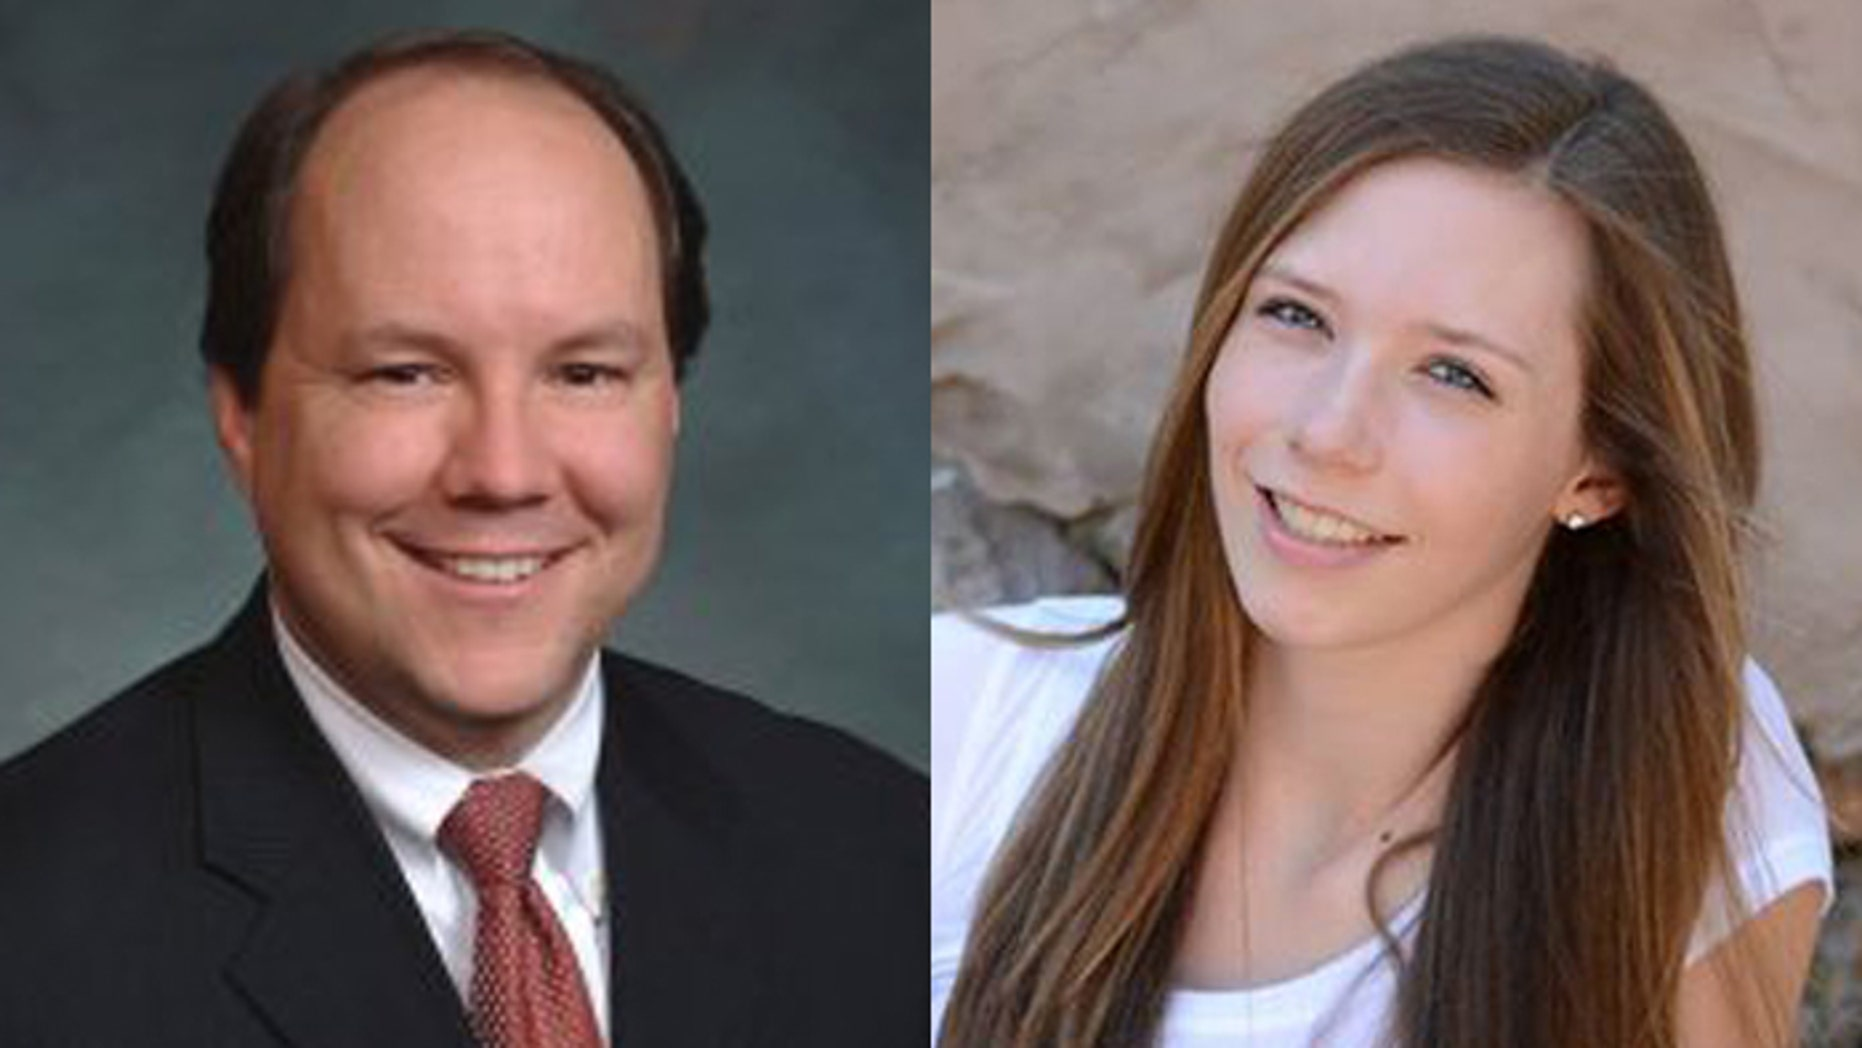 The son of Colorado State Sen. Ted Harvey, (l.), attends the same high school were a student gunned down Claire Davis (r.).